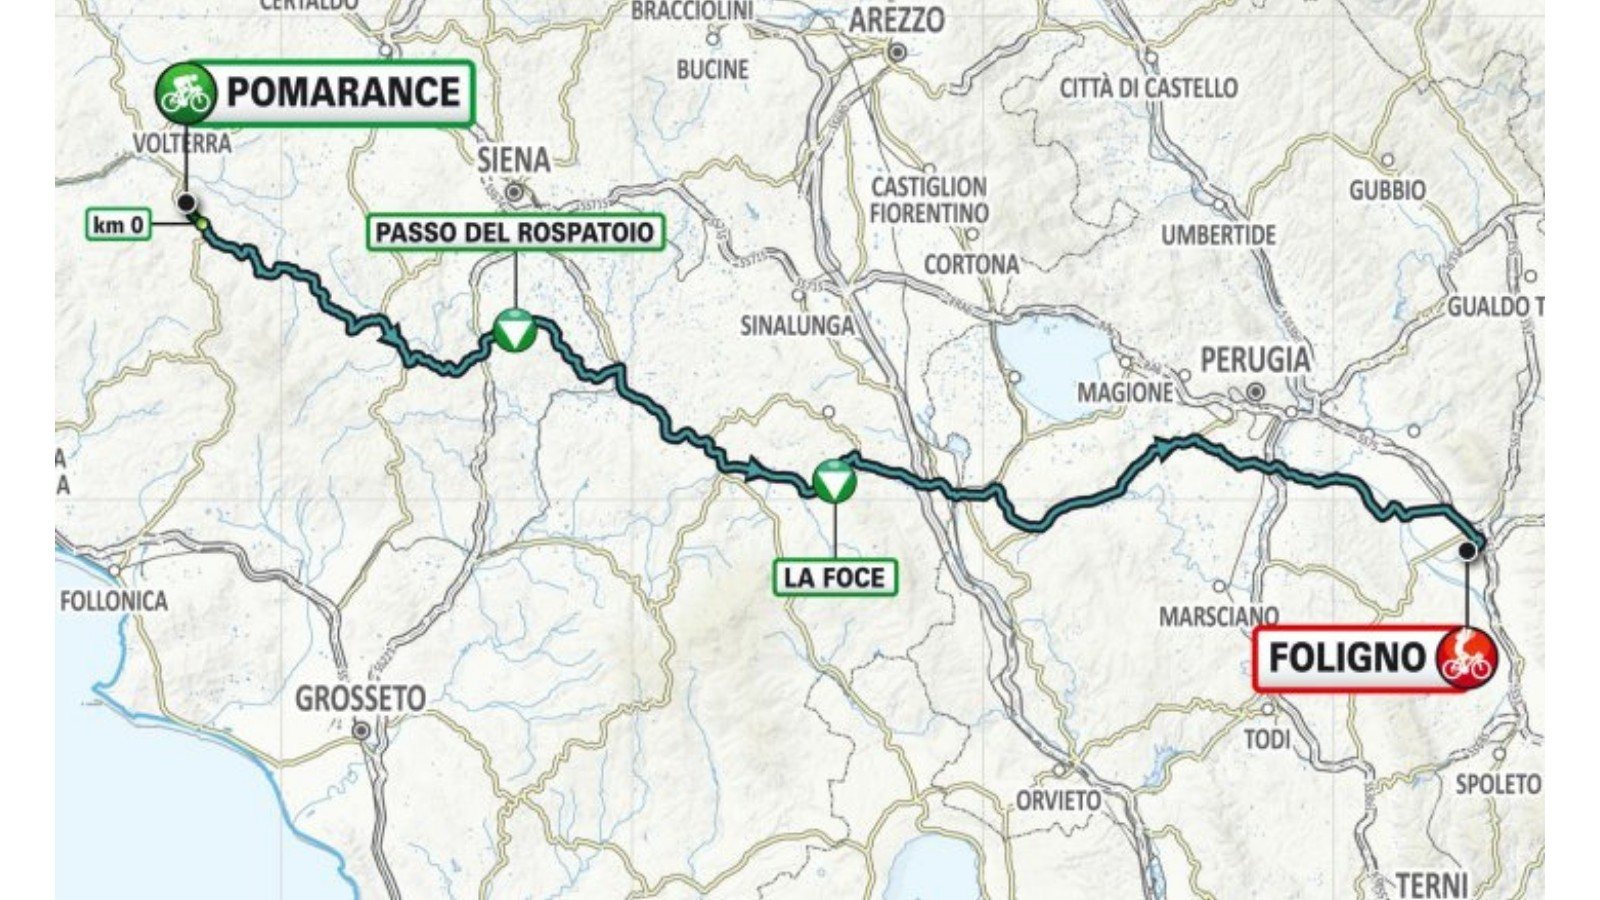 Stage 3 moves through Siena and tackles the Passo del Rospatoio